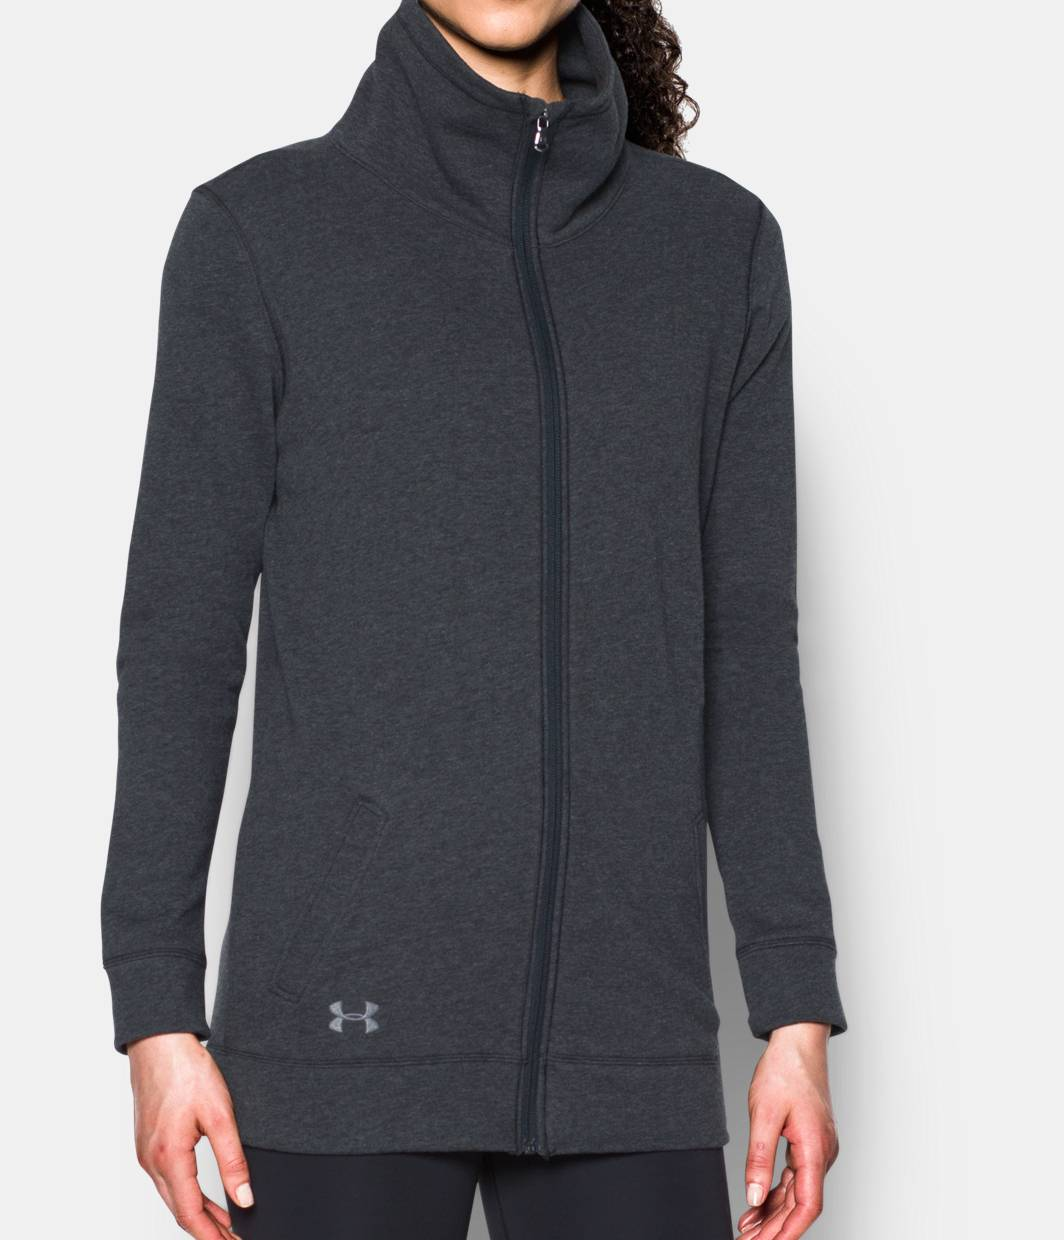 Women's Cold Weather Gear & Clothing | Under Armour US